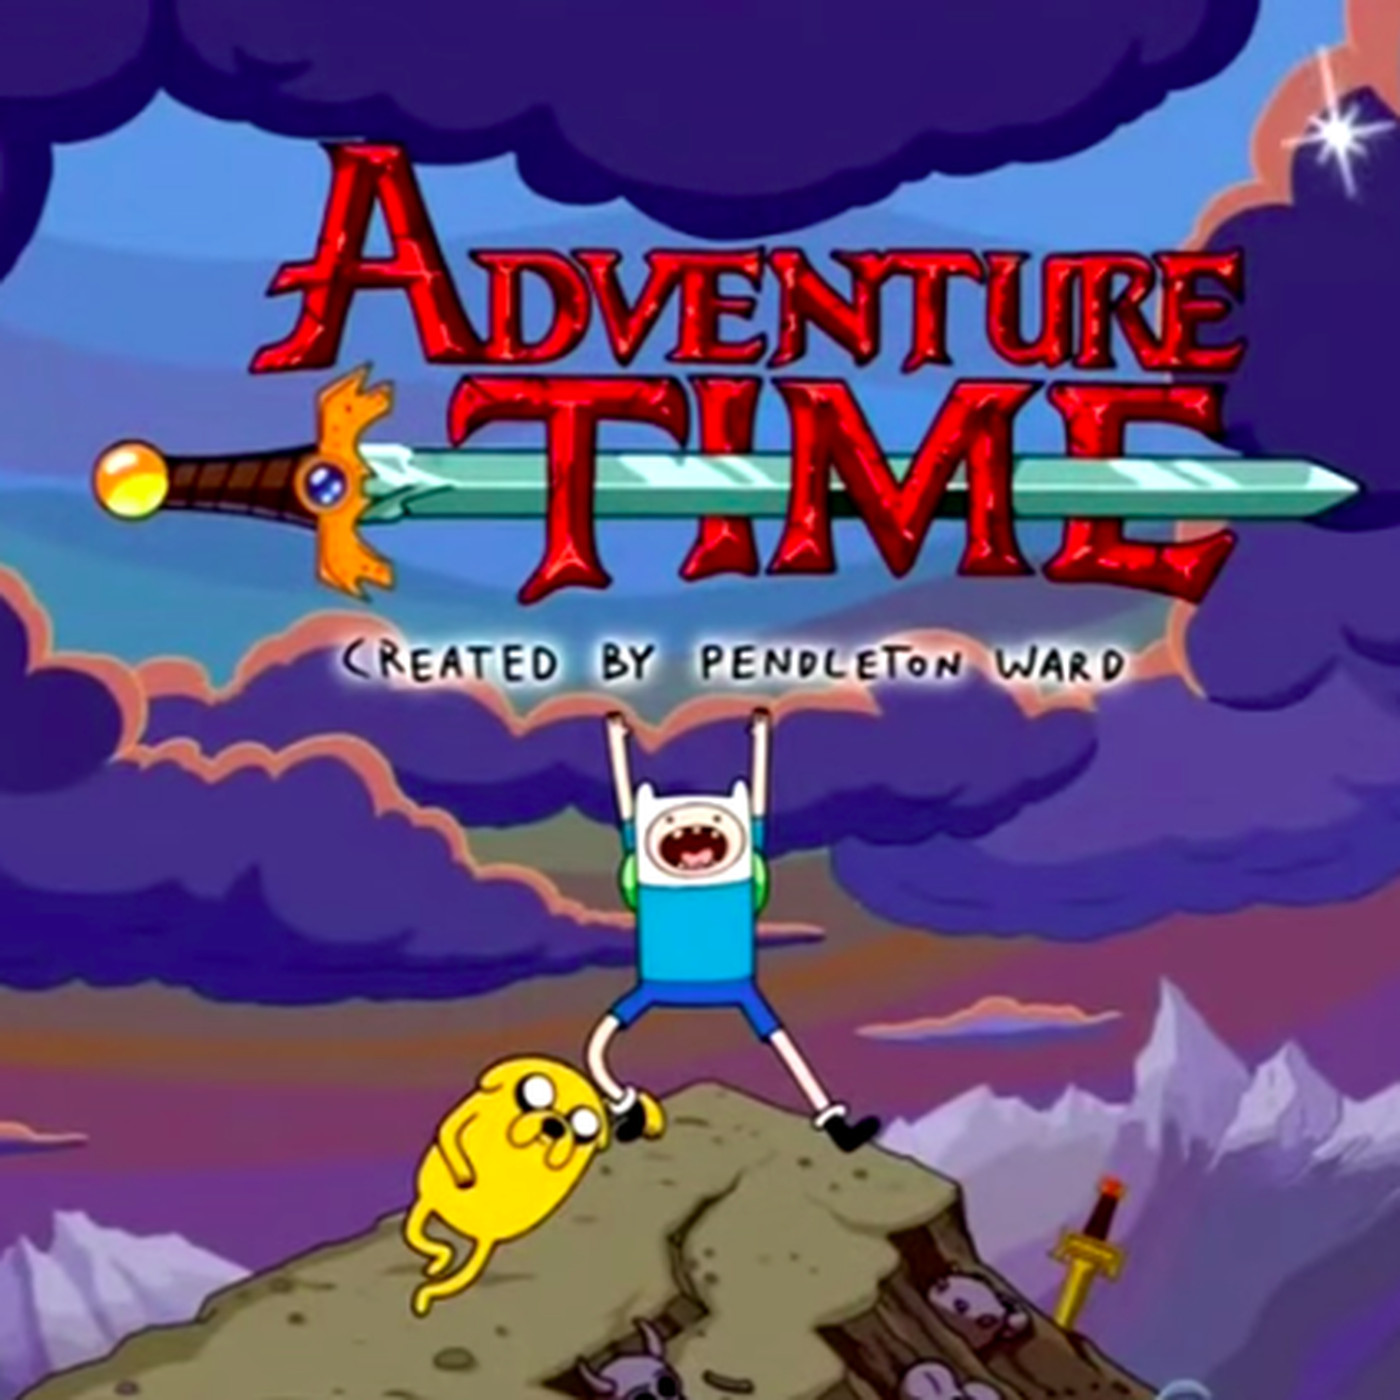 Warner Bros  reportedly developing an Adventure Time movie - The Verge